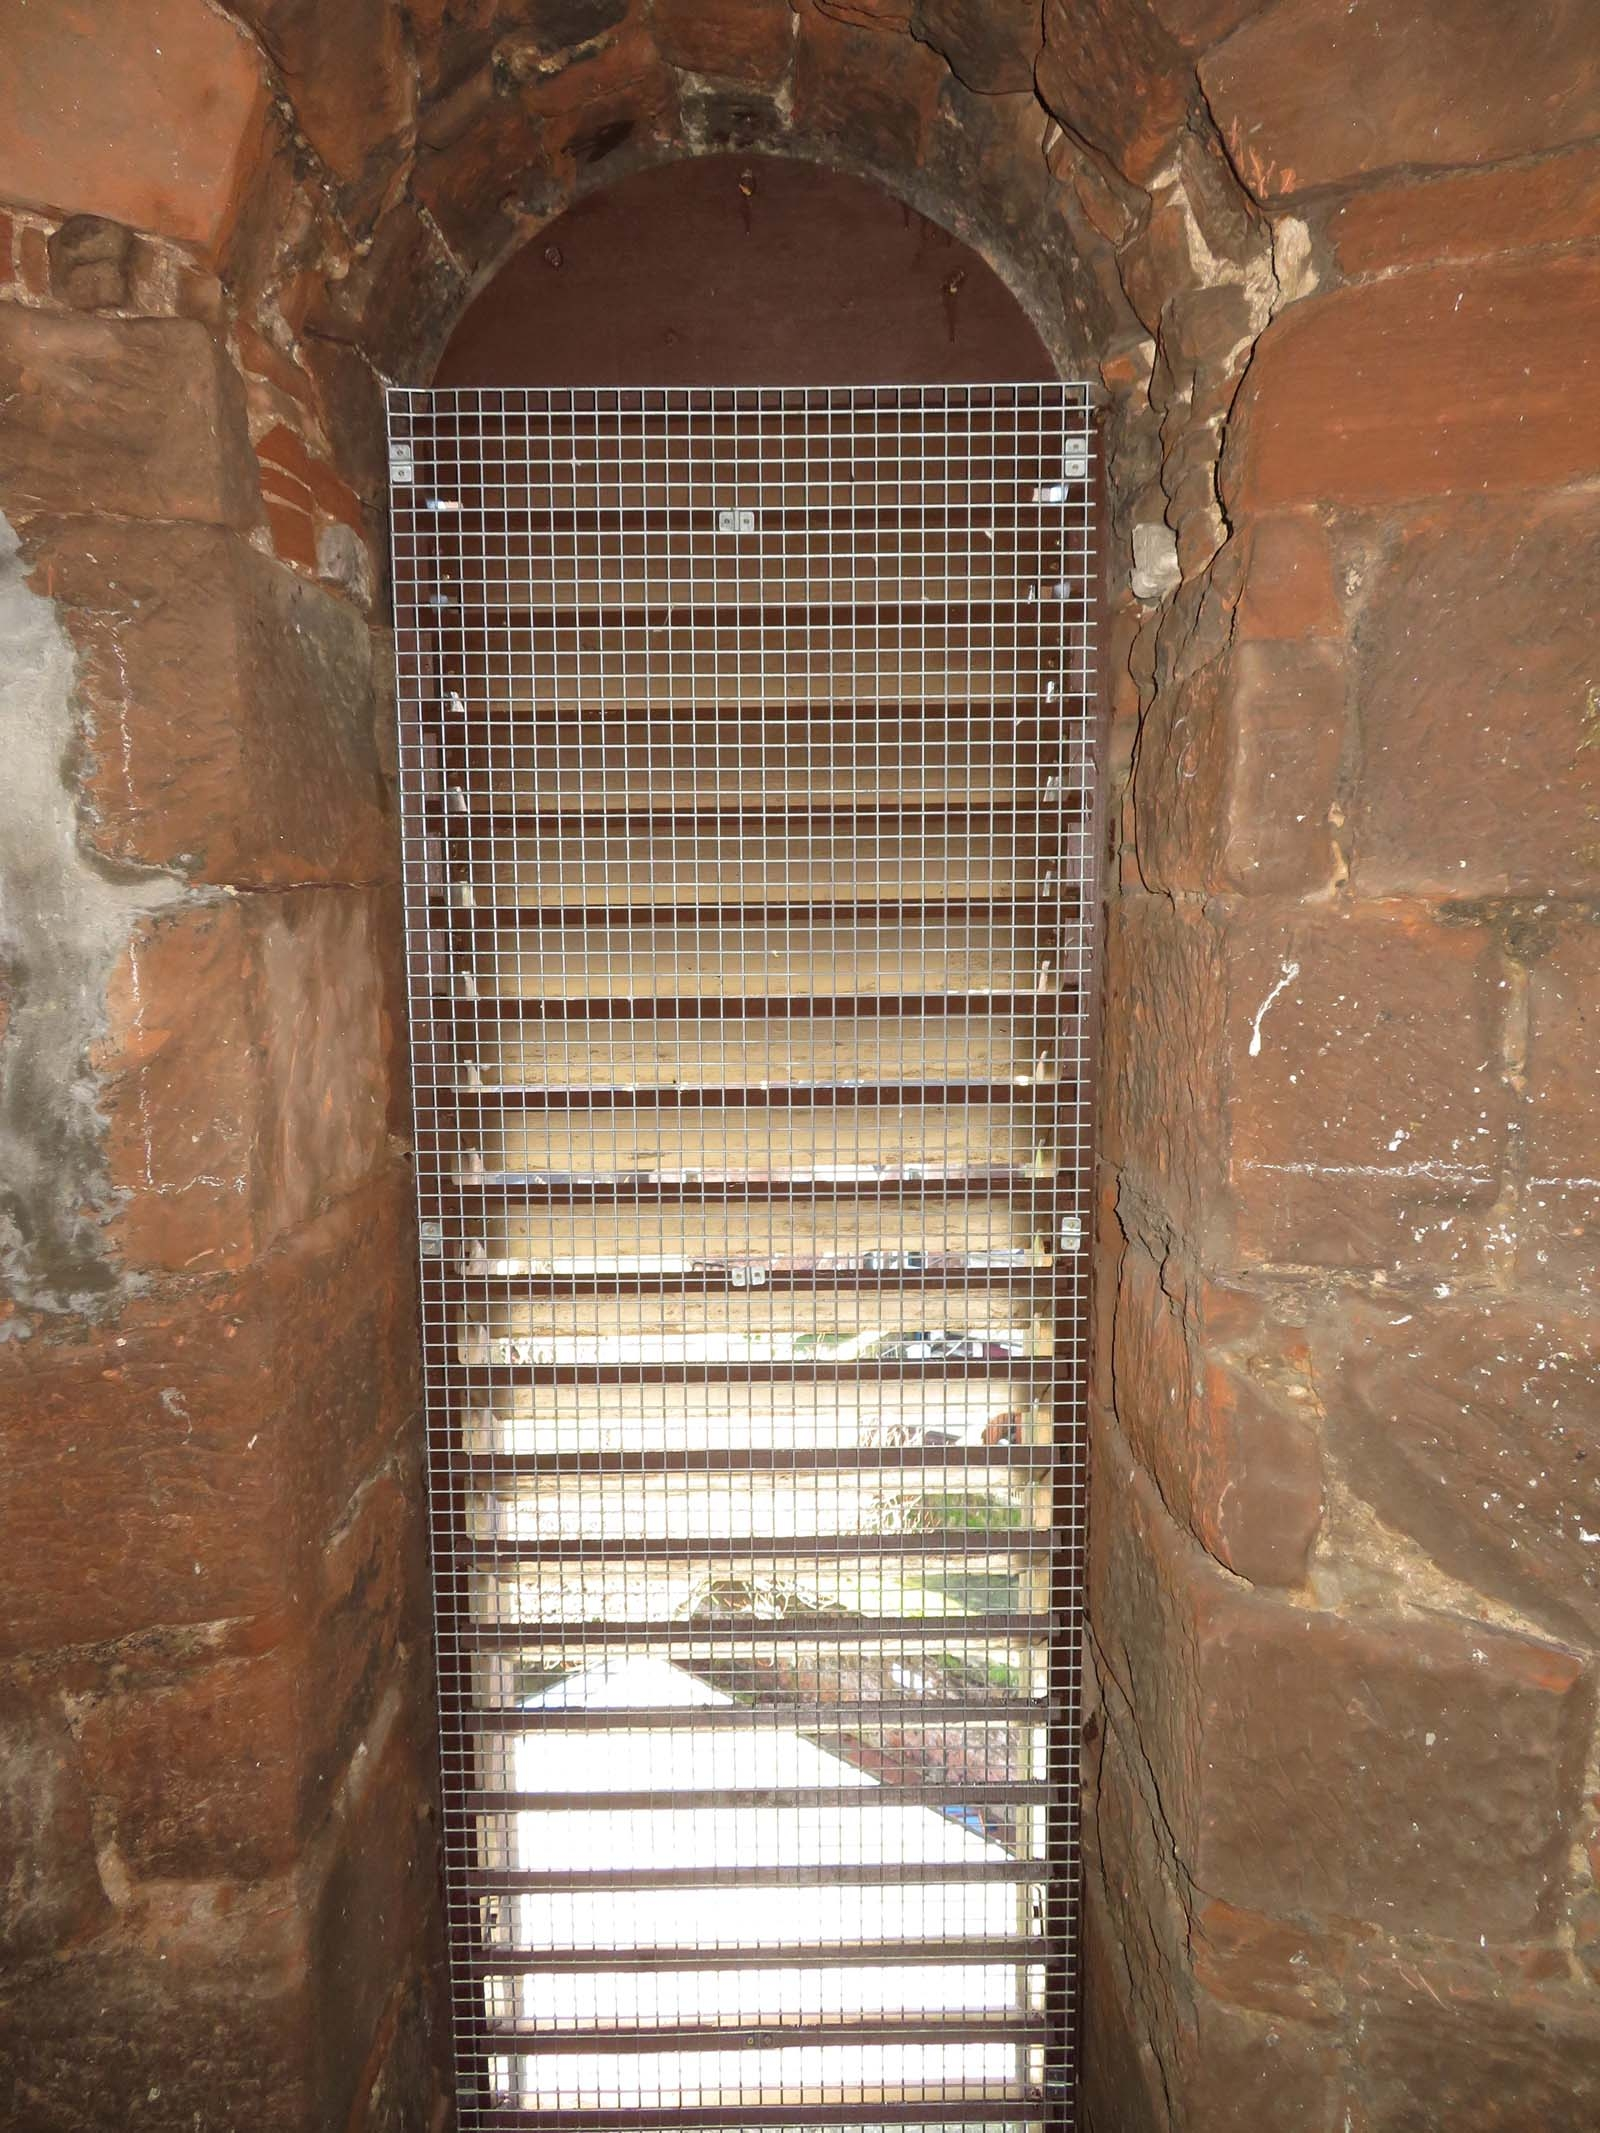 Fully meshed sapele hardwood louvres installed and painted with 3 coats of paint on a Dumfriesshire church steeple